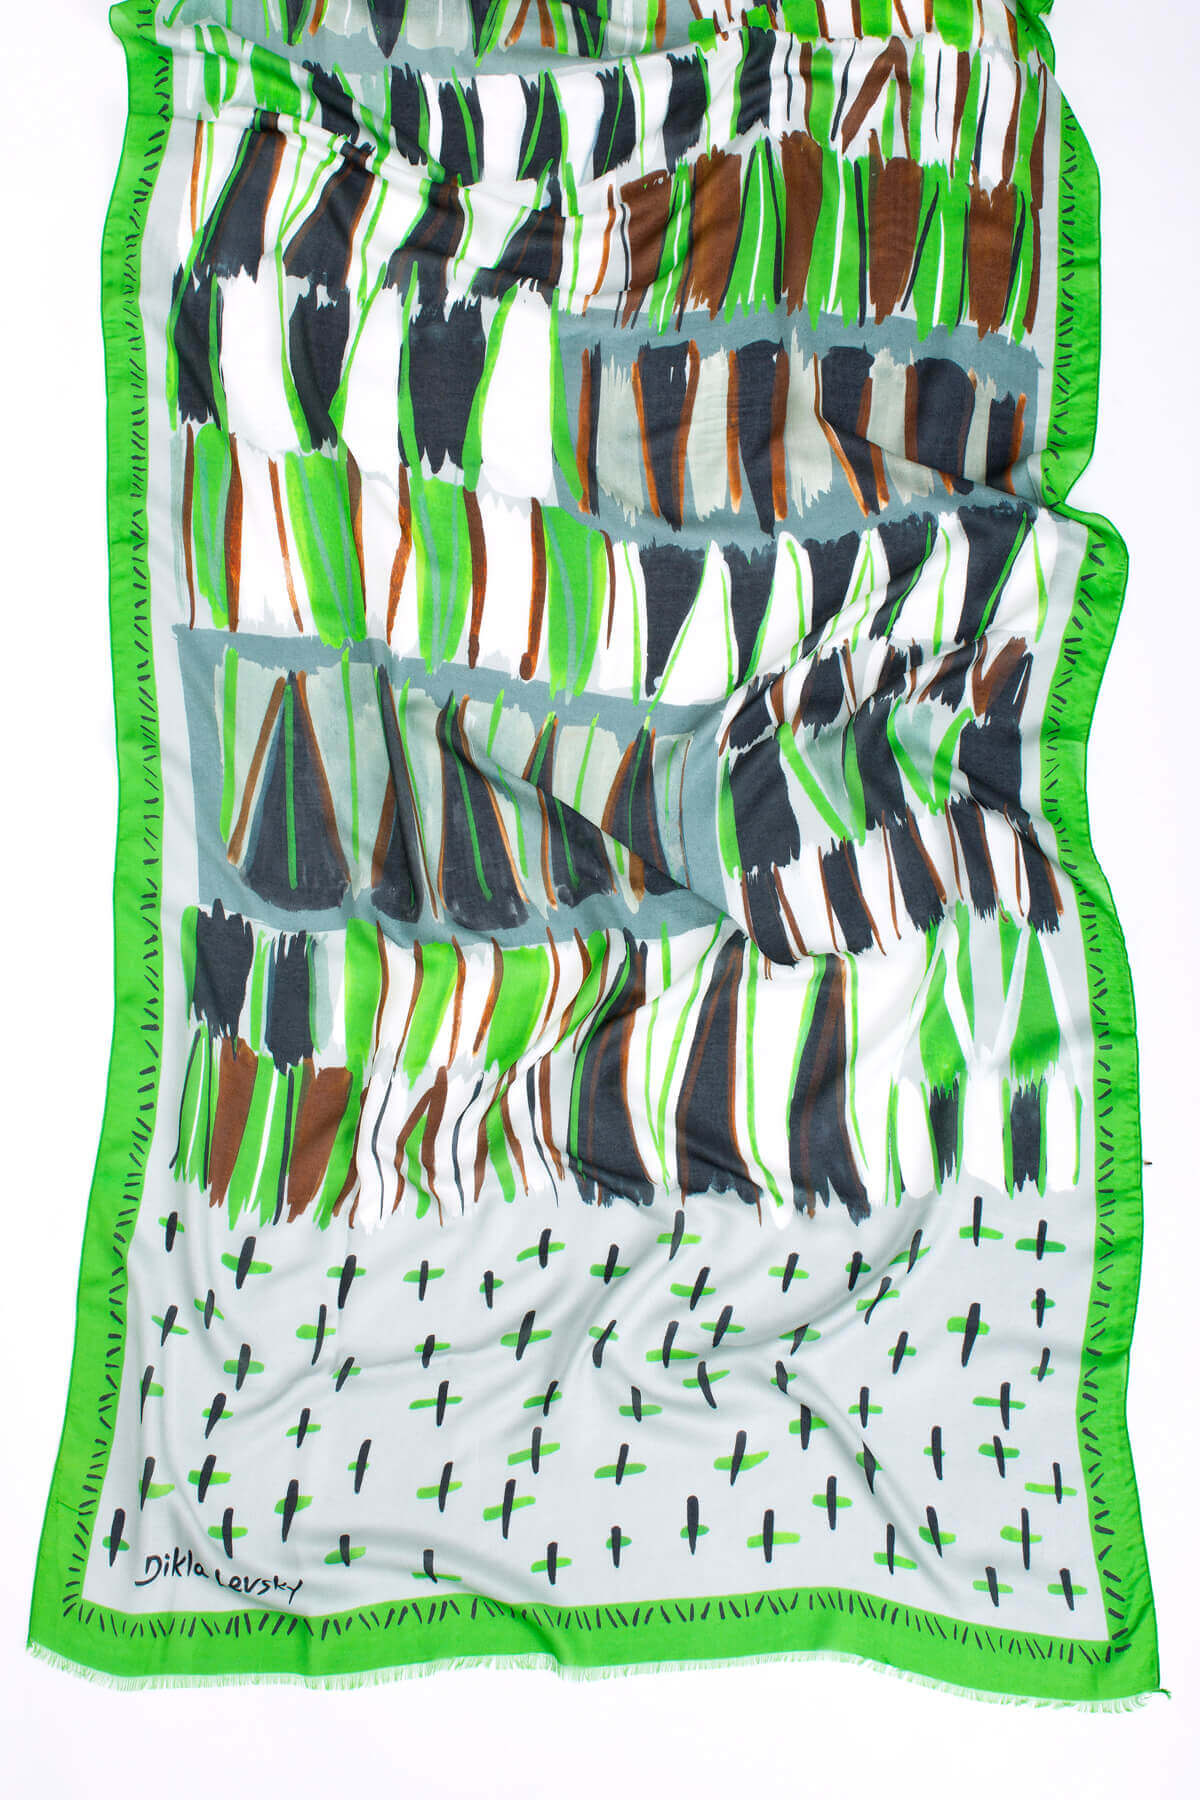 printed shawl, modal and cashmere, vibrant green, dikla levsky, luxury scarves